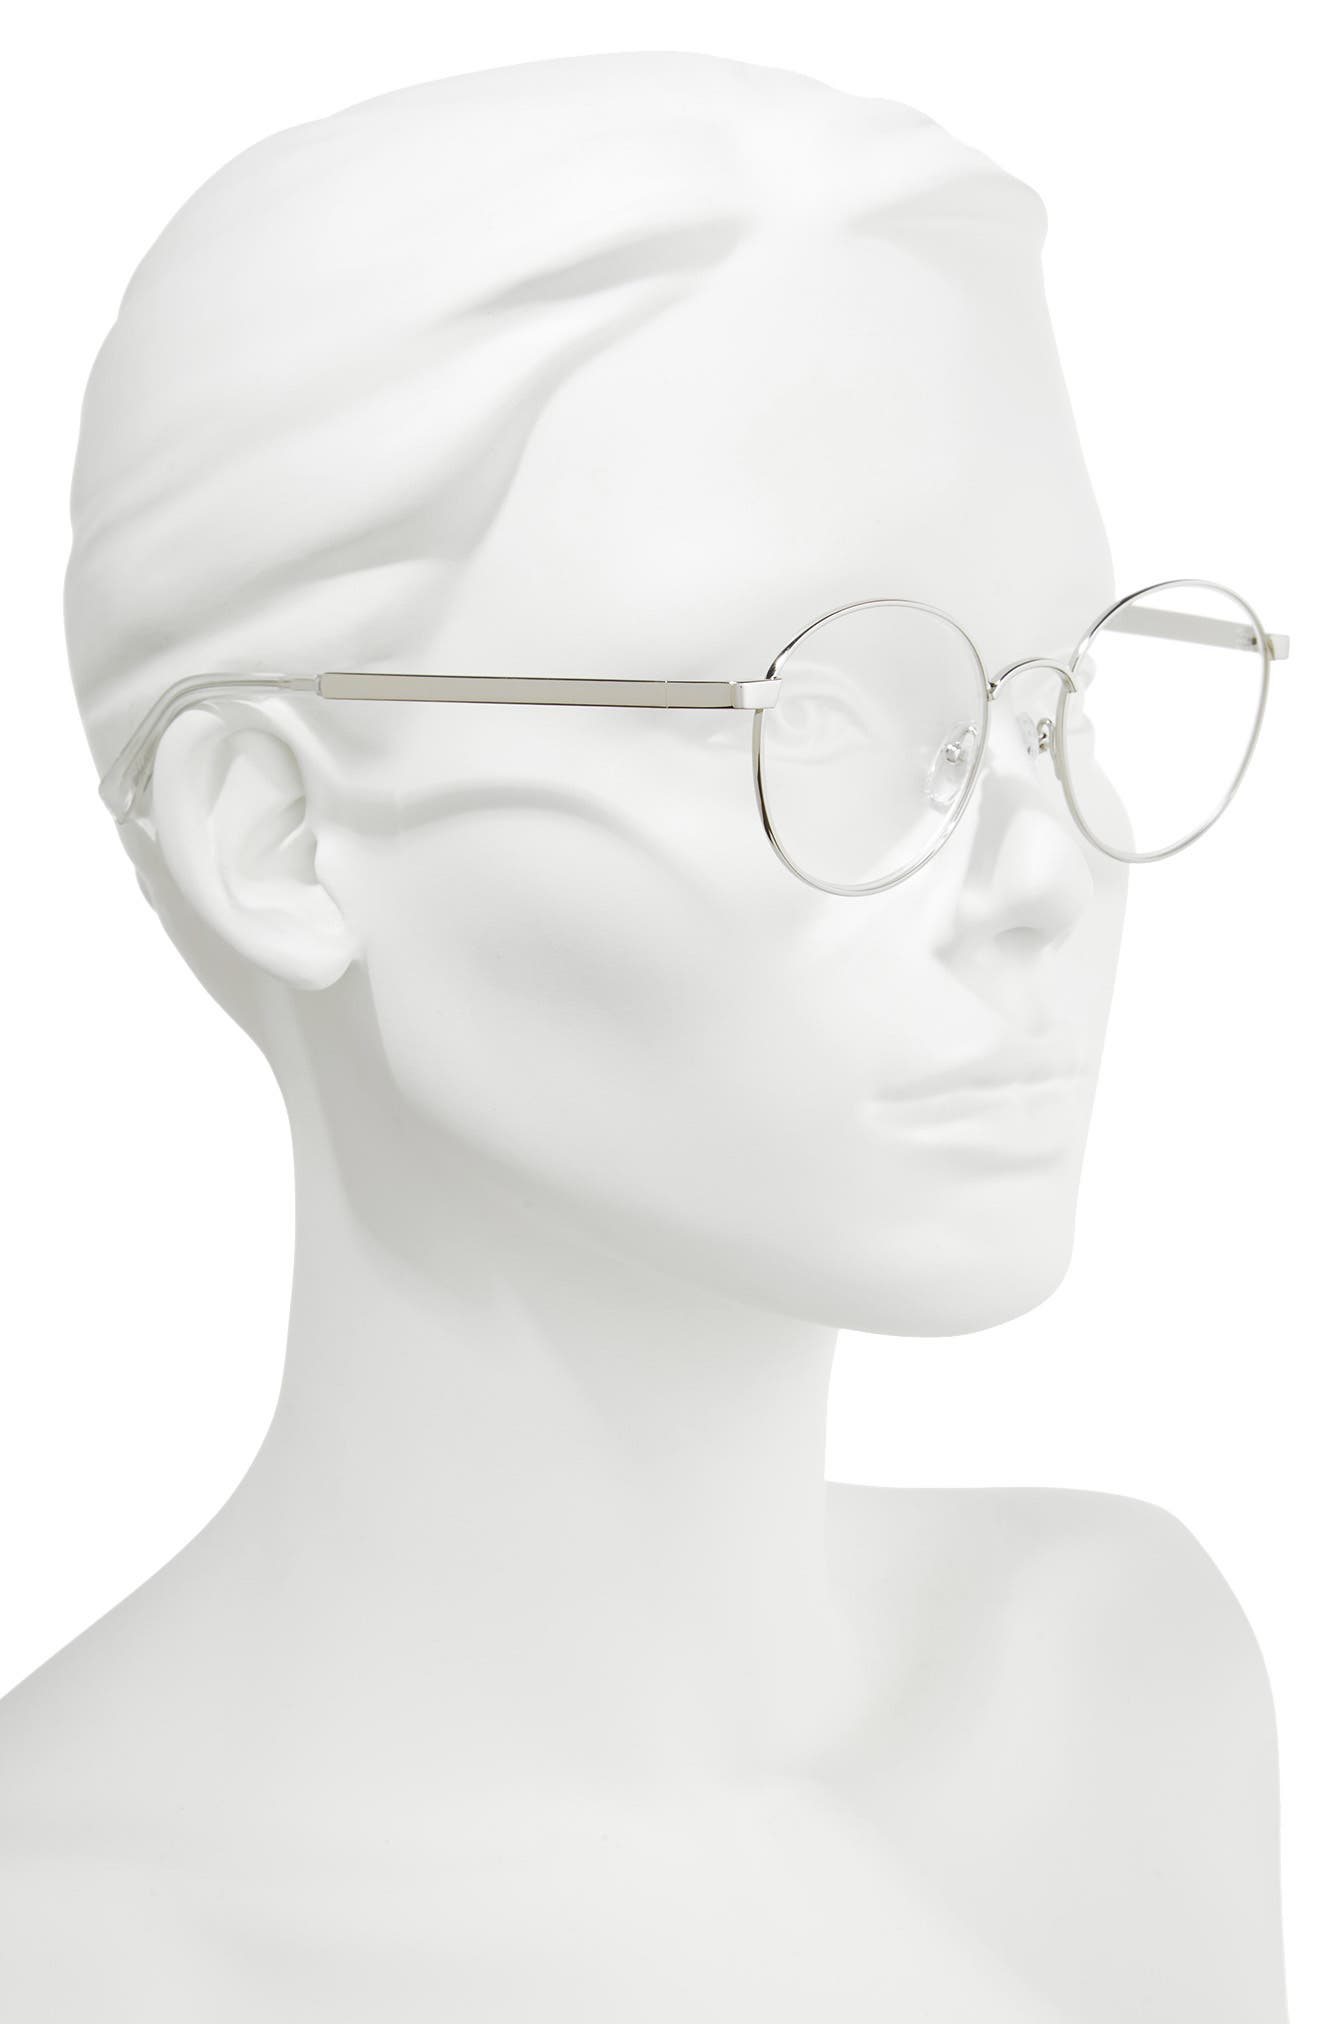 Bothering Sights 51mm Reading Glasses,                             Alternate thumbnail 2, color,                             Silver/ Cellophane